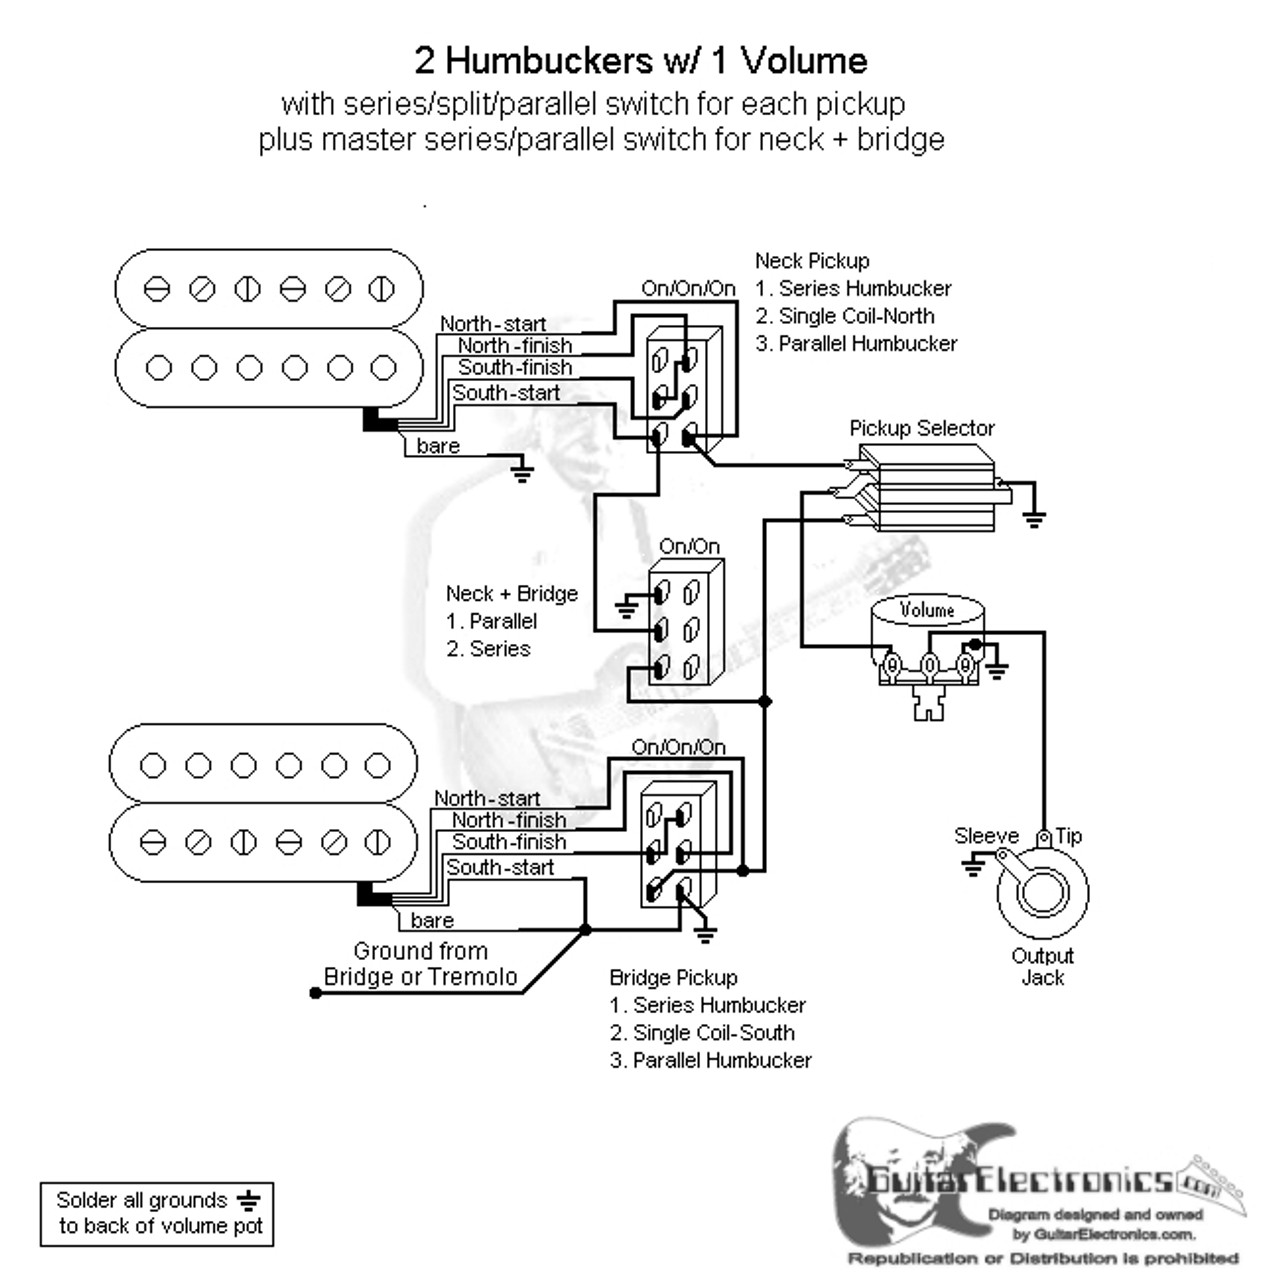 medium resolution of  pickup wiring this diagram shows how to 2 hbs 3 way toggle 1 vol series split parallel u0026 master series parallelfor split